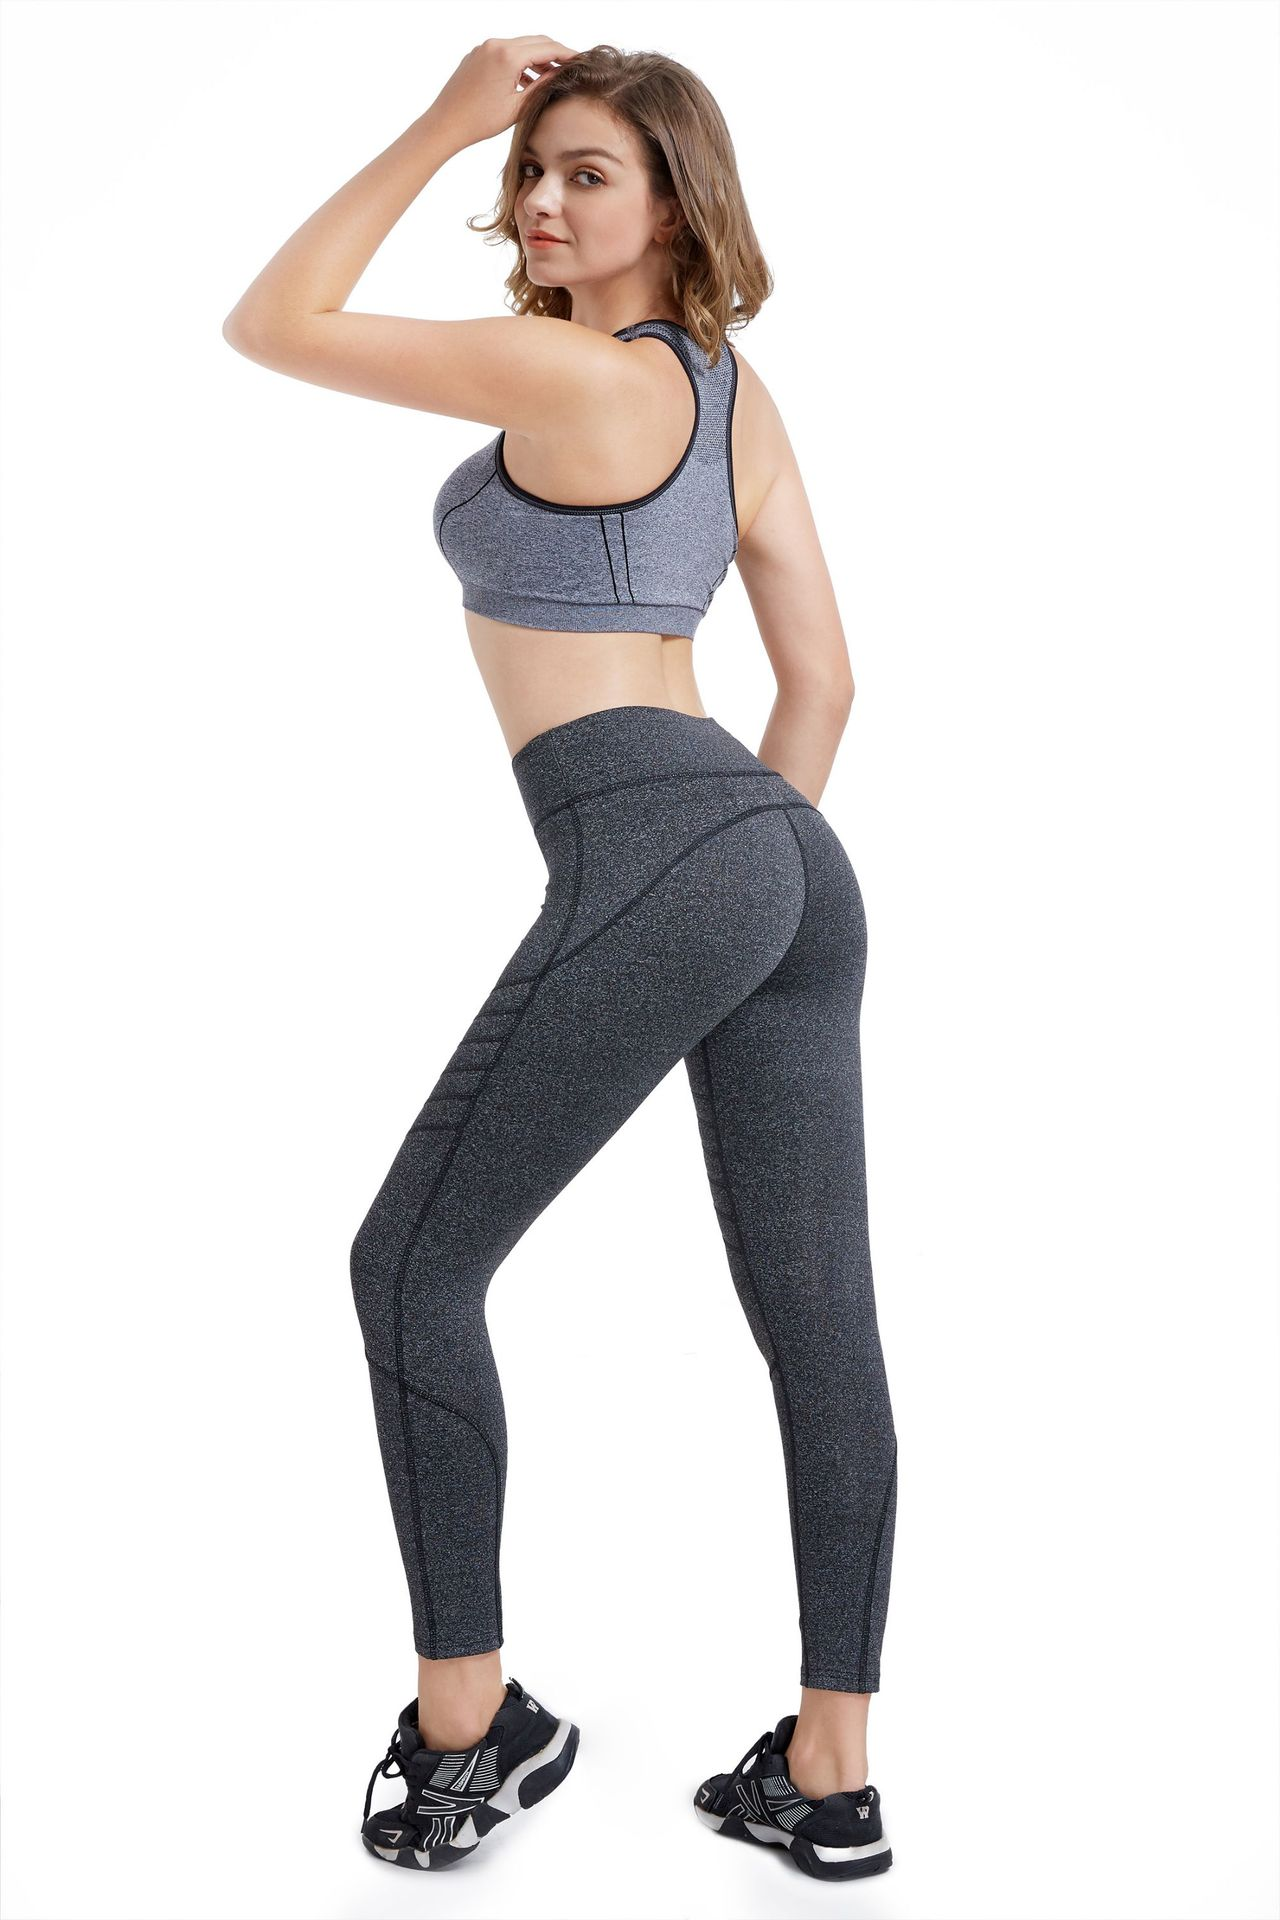 Hot Selling Autumn And Winter Women's Outdoor Sports Tight Slim Fit Plastic Leggings Fitness Yoga Pants